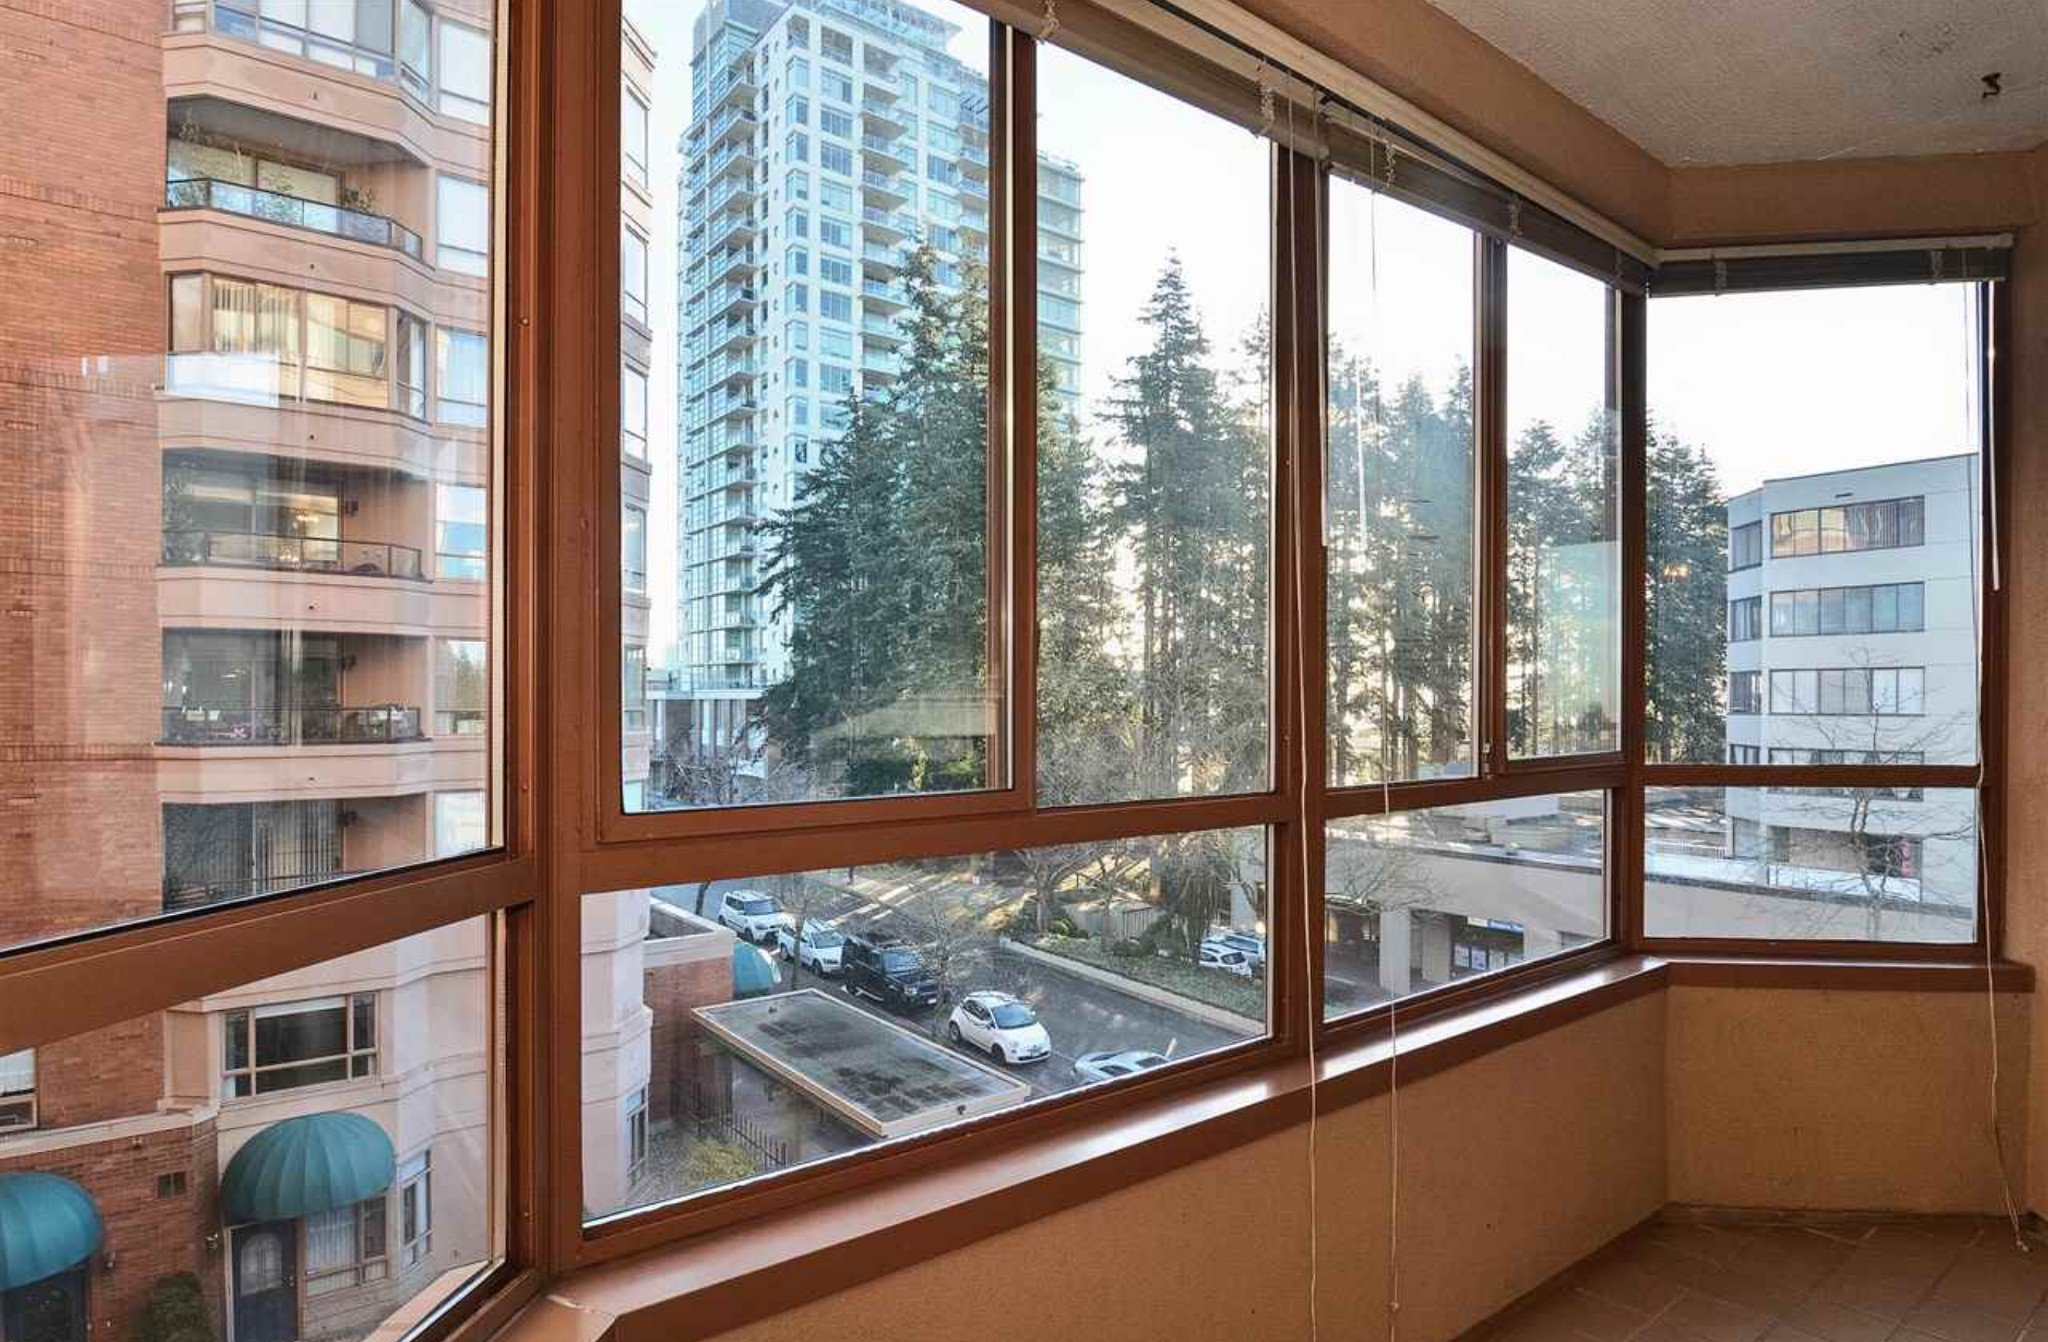 Photo 10: Photos: 405, 15111 Russell Avenue: White Rock Condo for sale (South Surrey White Rock)  : MLS®# R2133728